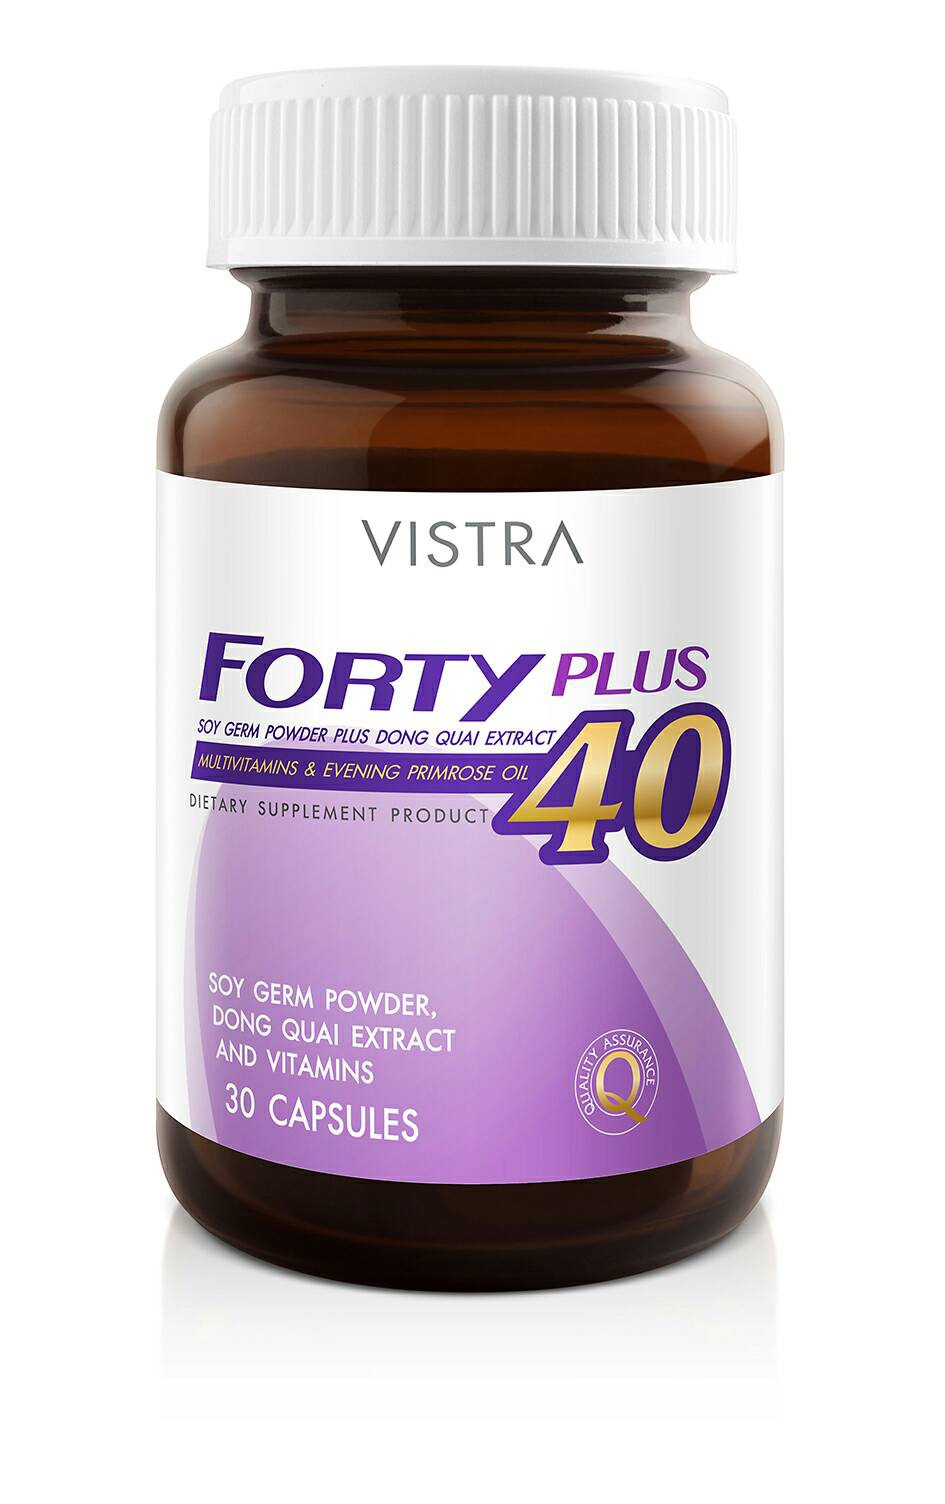 Vistra Forty Plus 40 Soy germ Powder plus Dong Quai Extract 30 caspsules.